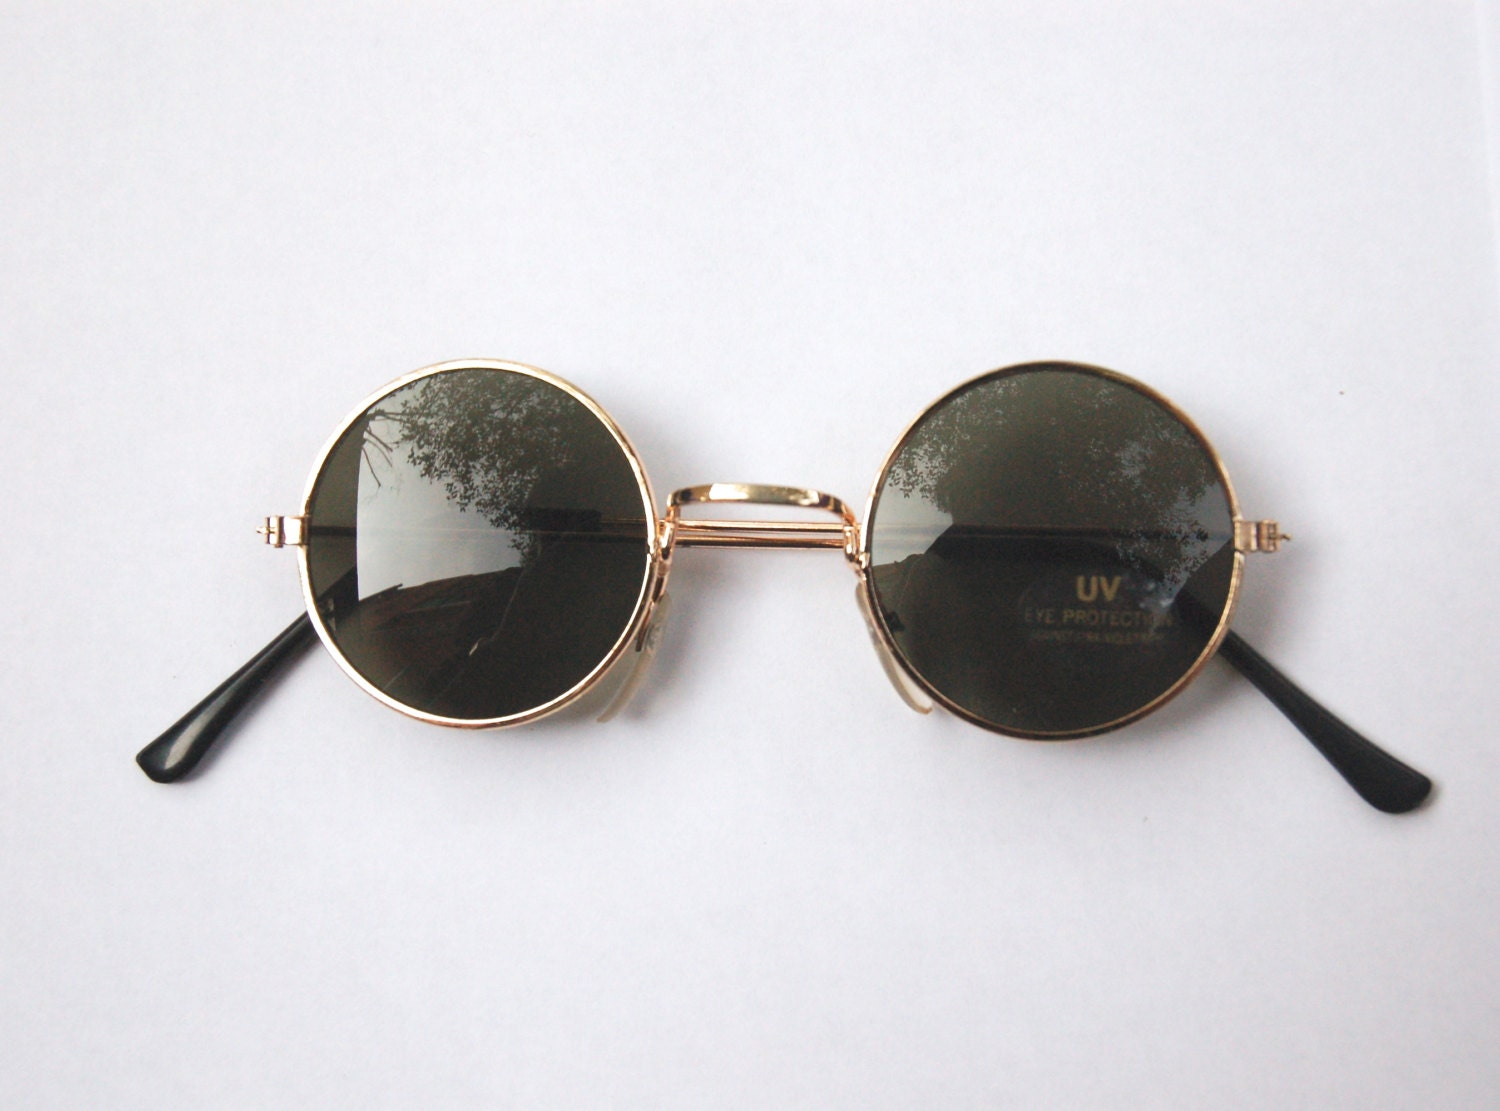 Gold Frame Glasses Tumblr : 90s Vintage Circle Sunglasses w Gold Tone Frame NOS by ...